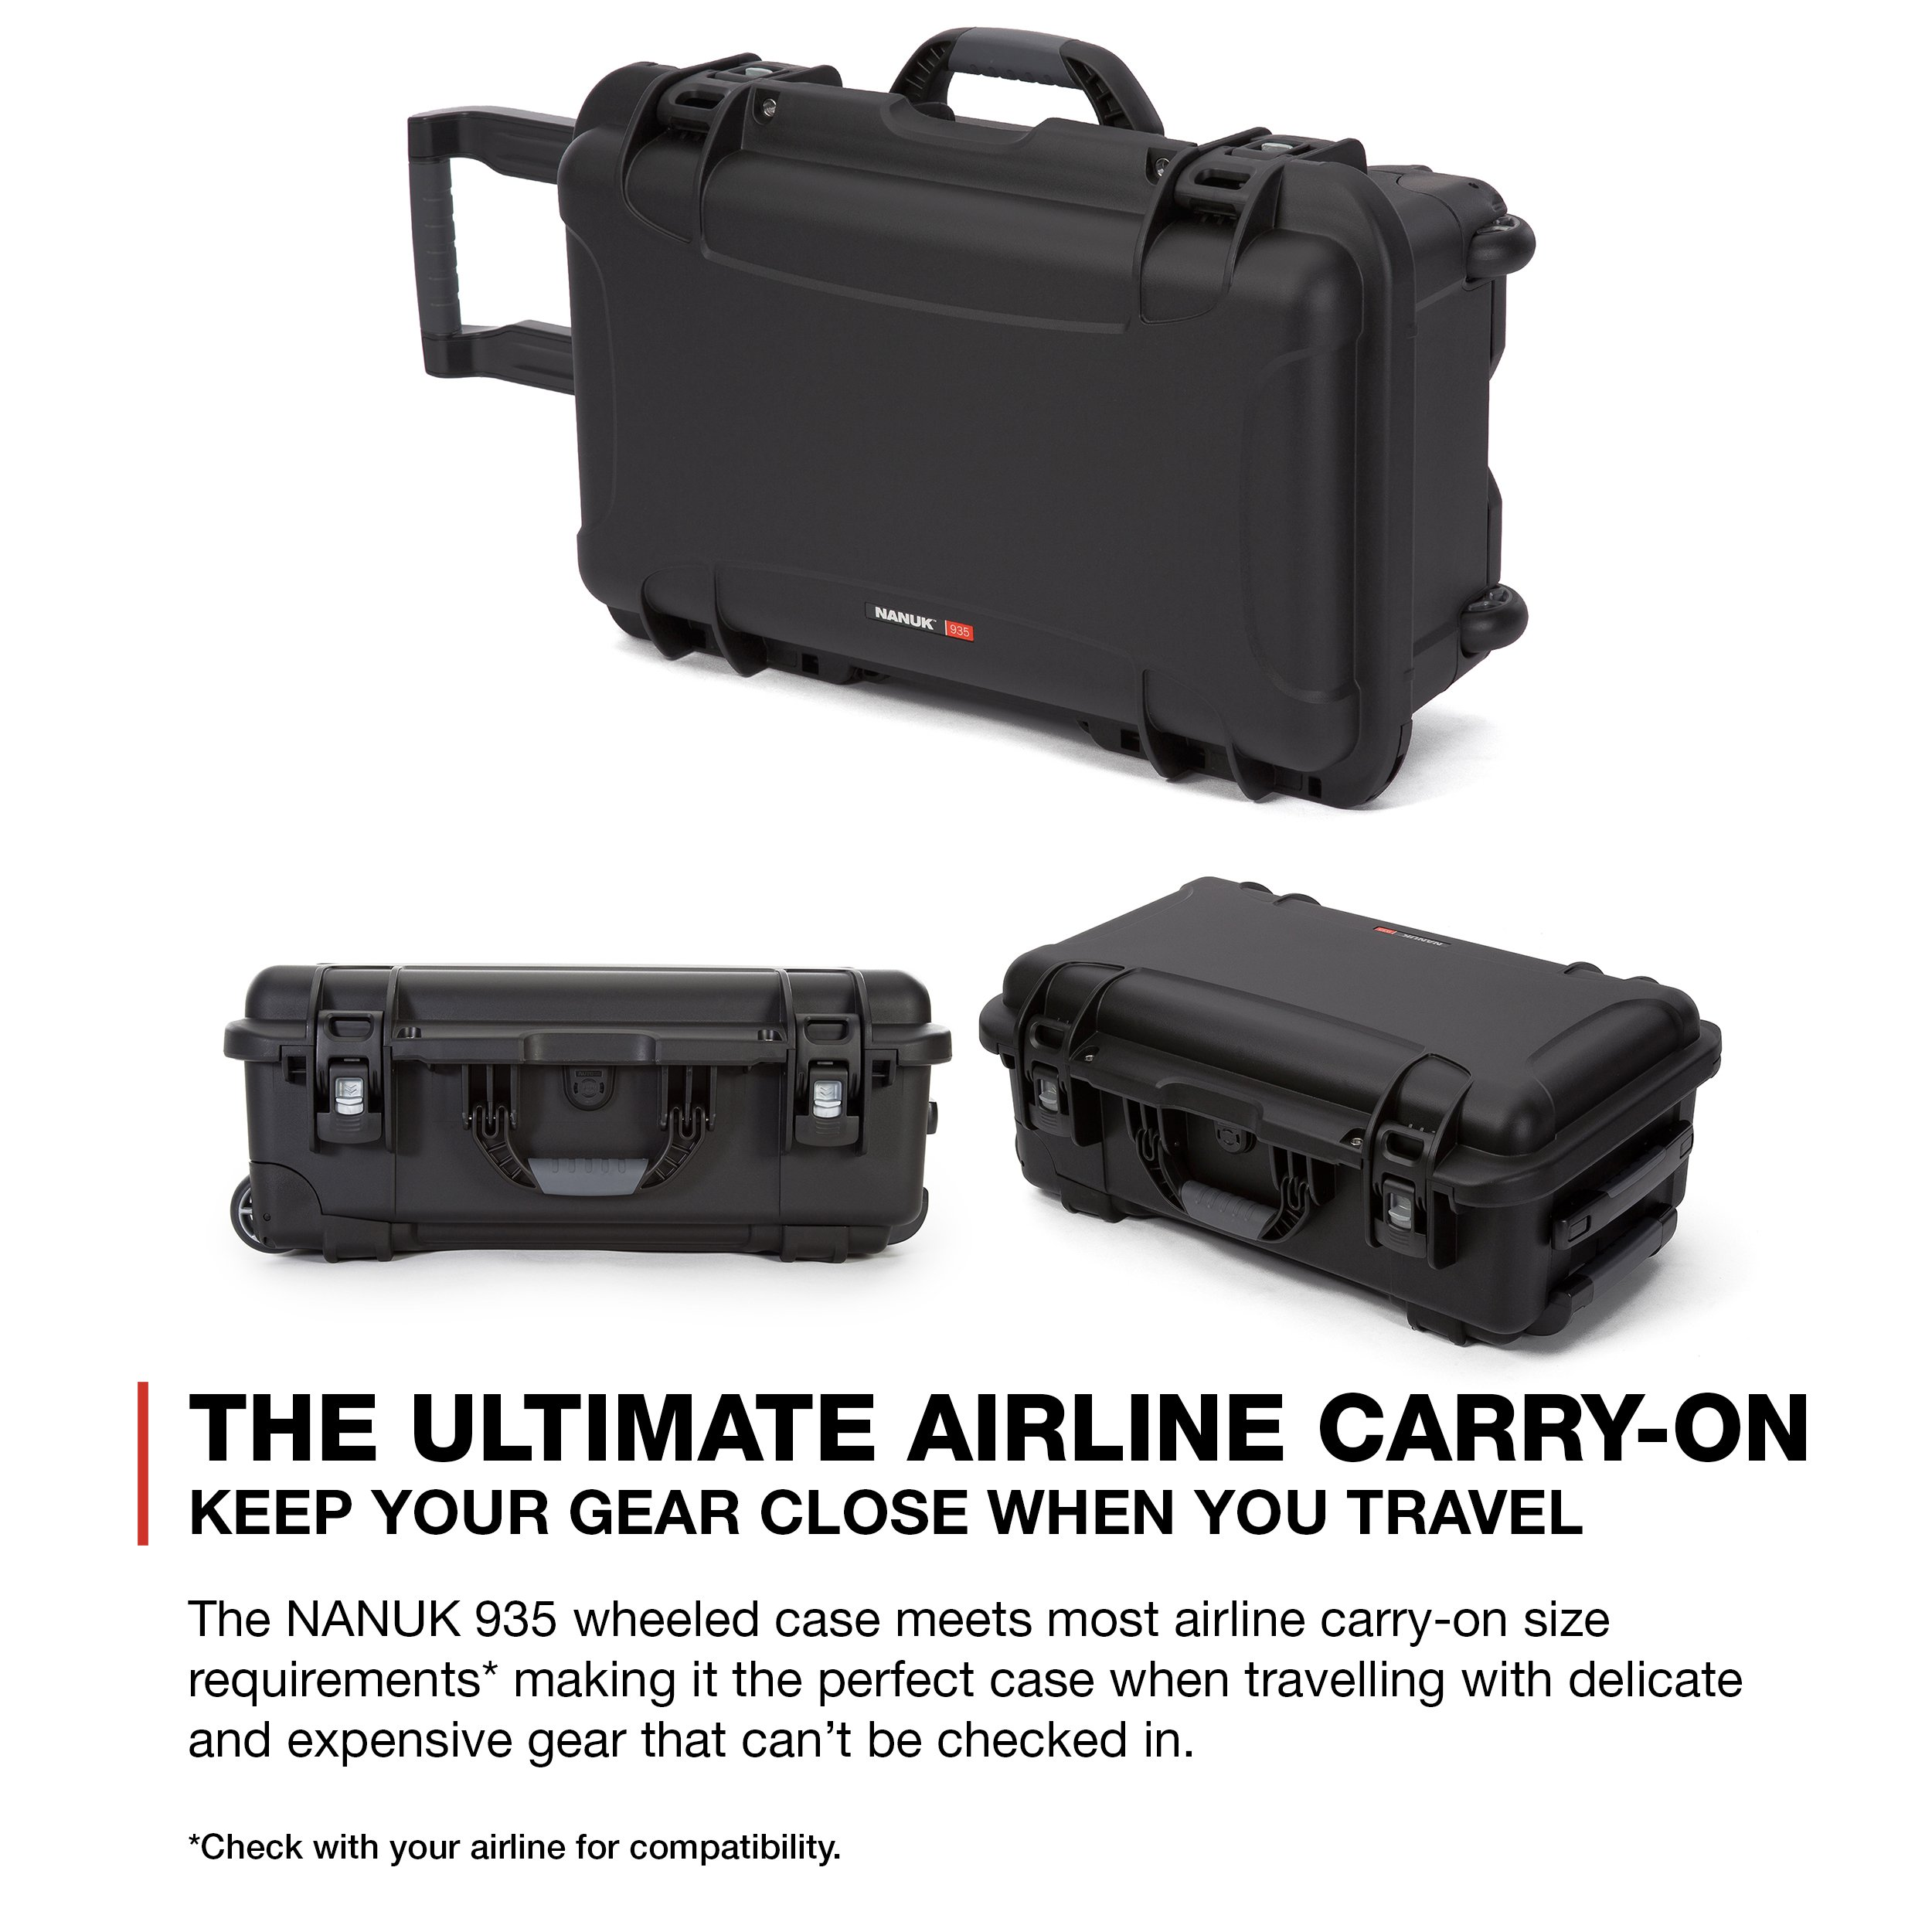 Nanuk 935 Waterproof Carry-On Hard Case with Wheels and Foam Insert - Black by Nanuk (Image #11)